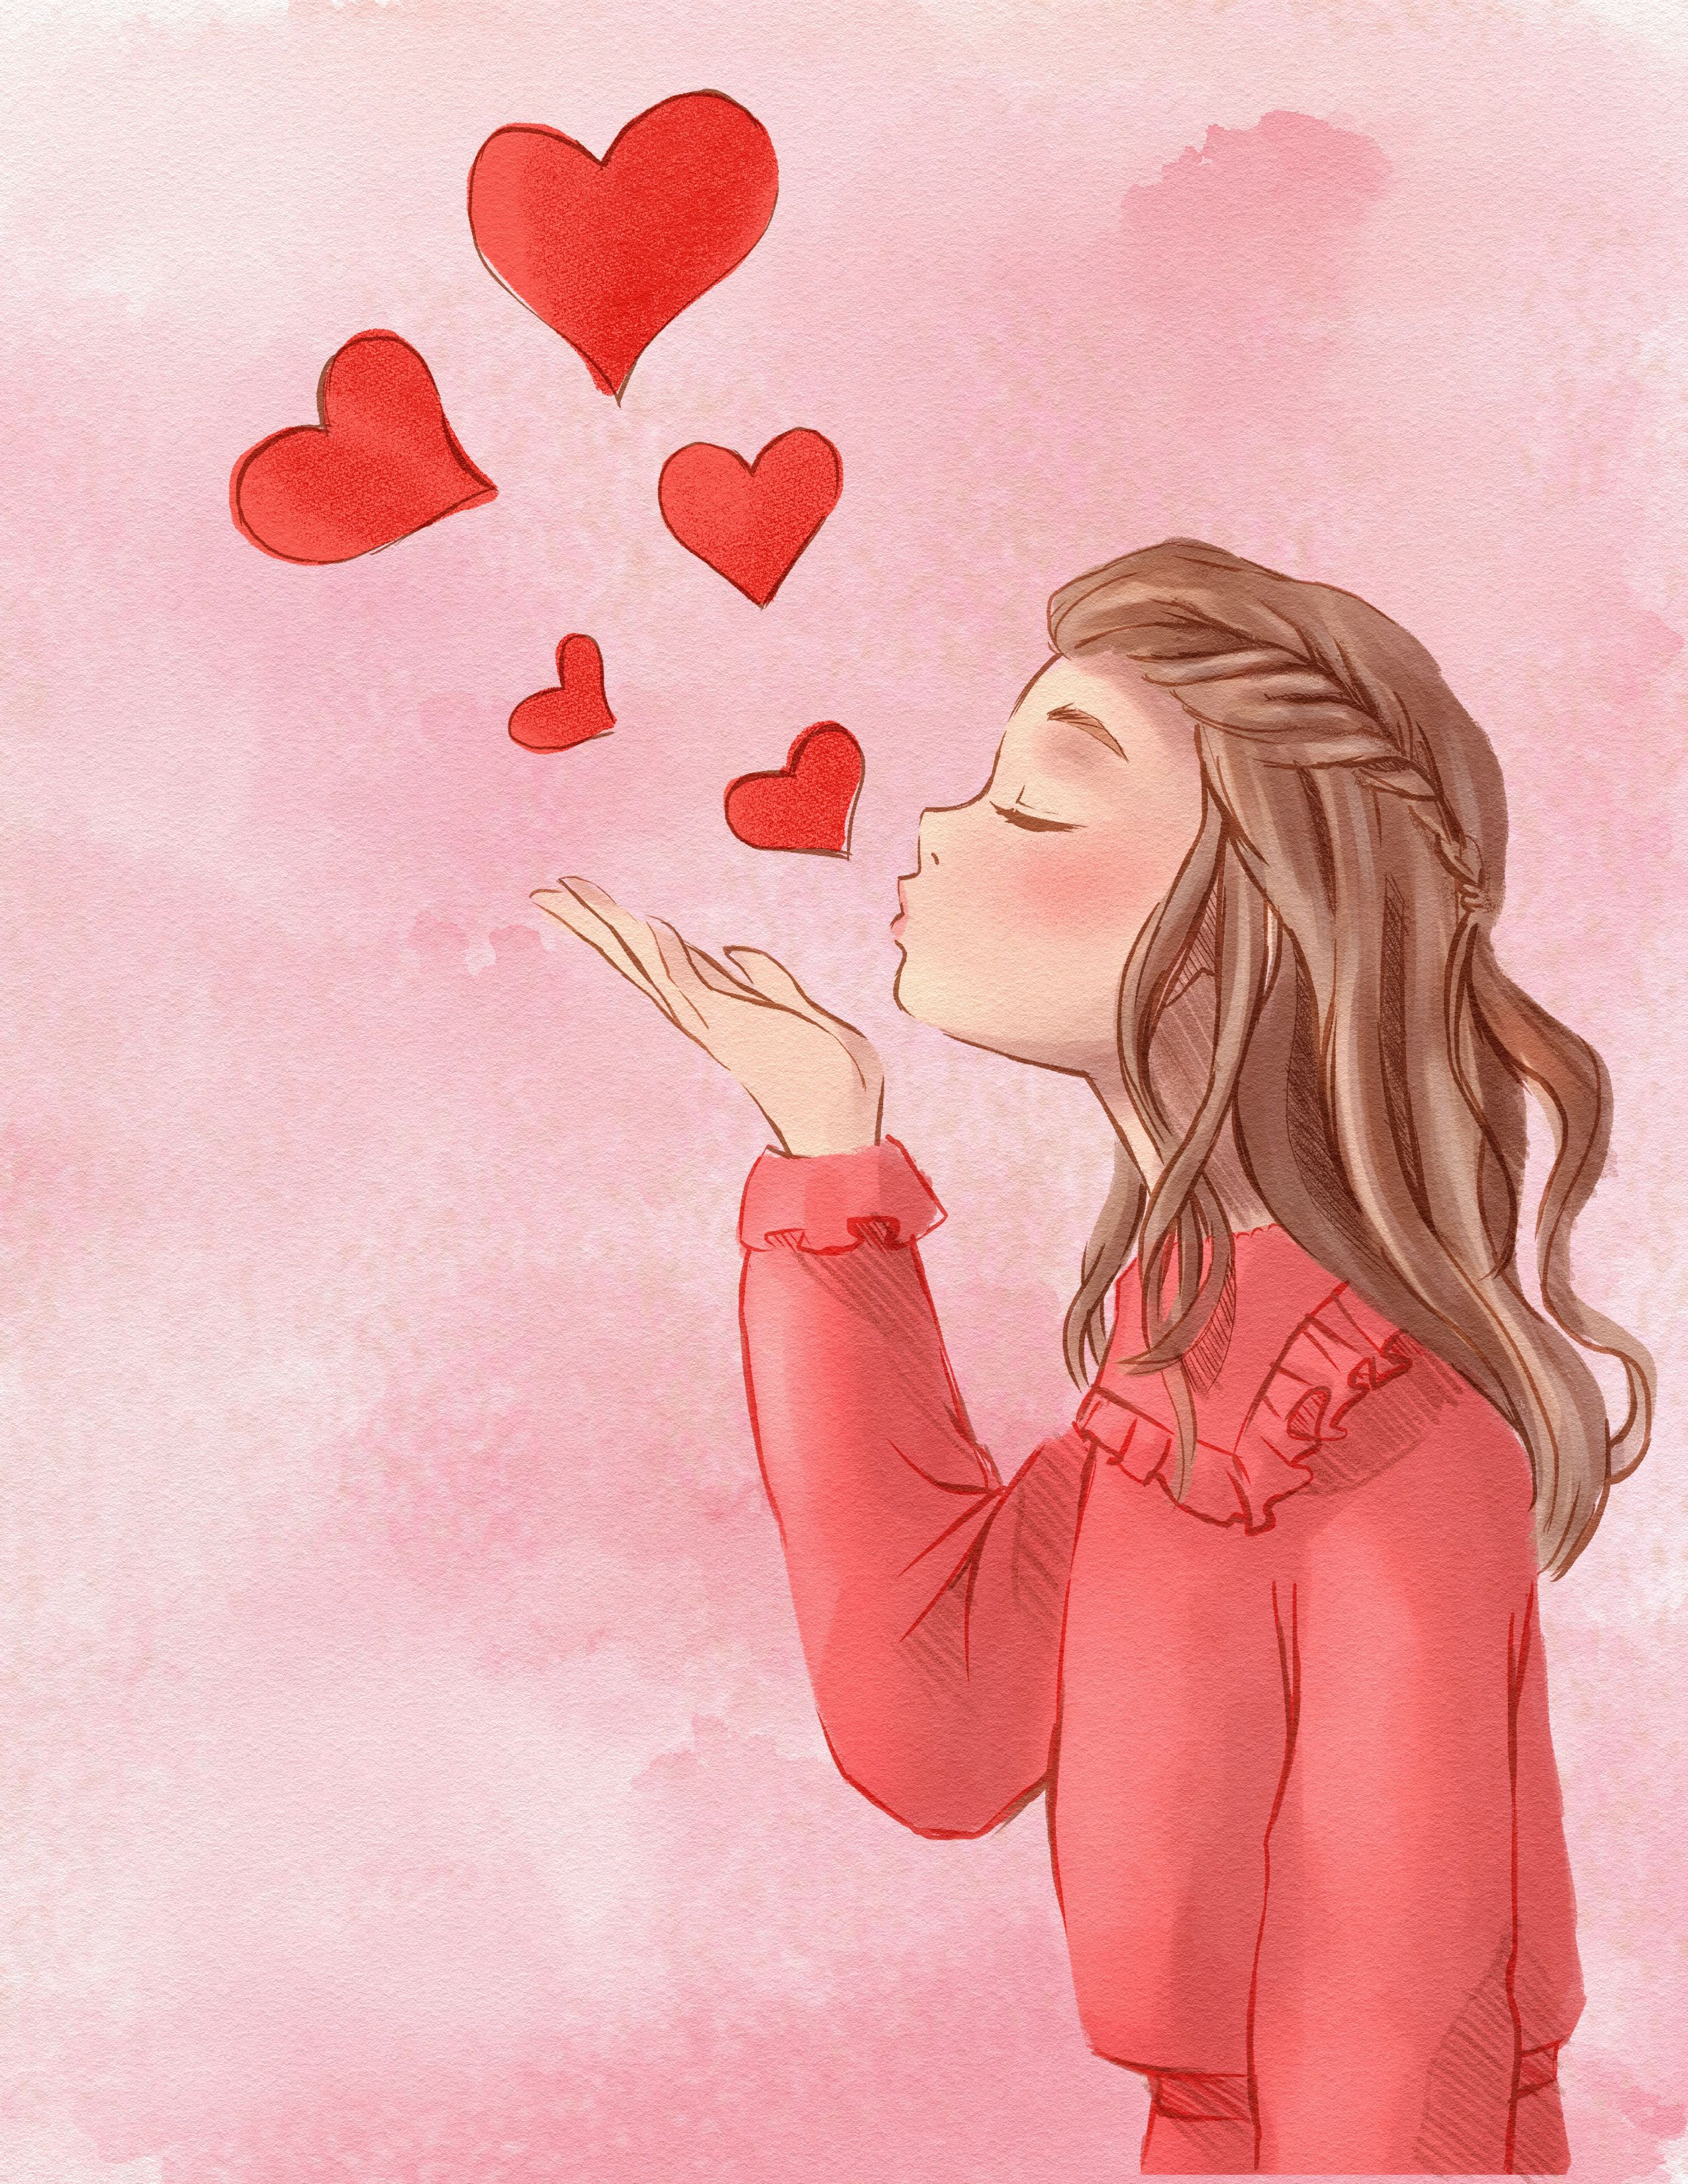 You Are Loved In 2020 Kiss Art Blowing Kisses Illustration